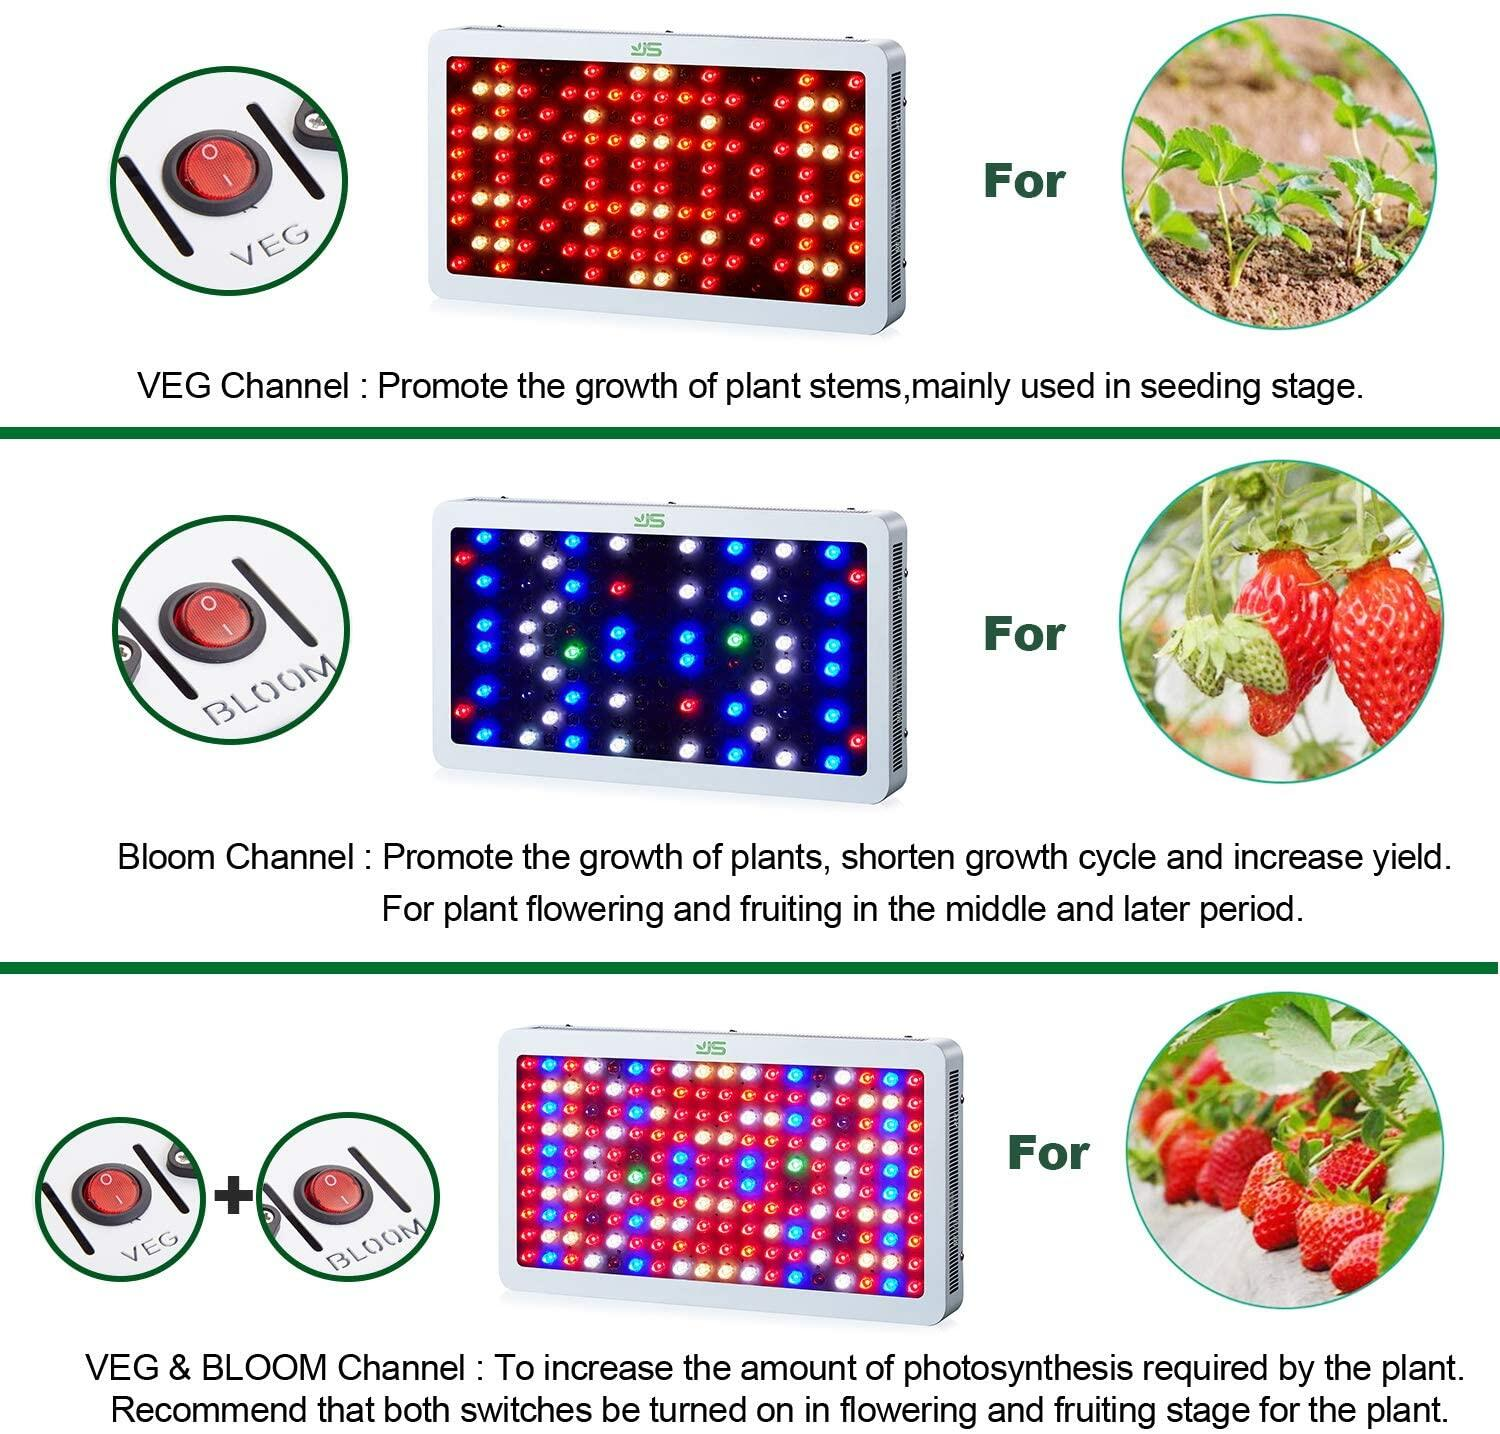 JS LED Grow Light, 1000W Double Chips , Full Spectrum Plant Grow Lights for Indoor Grow Box Greenhouse Plant Vegetable Flower Growing(UK Plug)JS LED Grow Light, Full Spectrum Plant Grow Light at smart-join.comLED Grow Light,Plant Grow Light